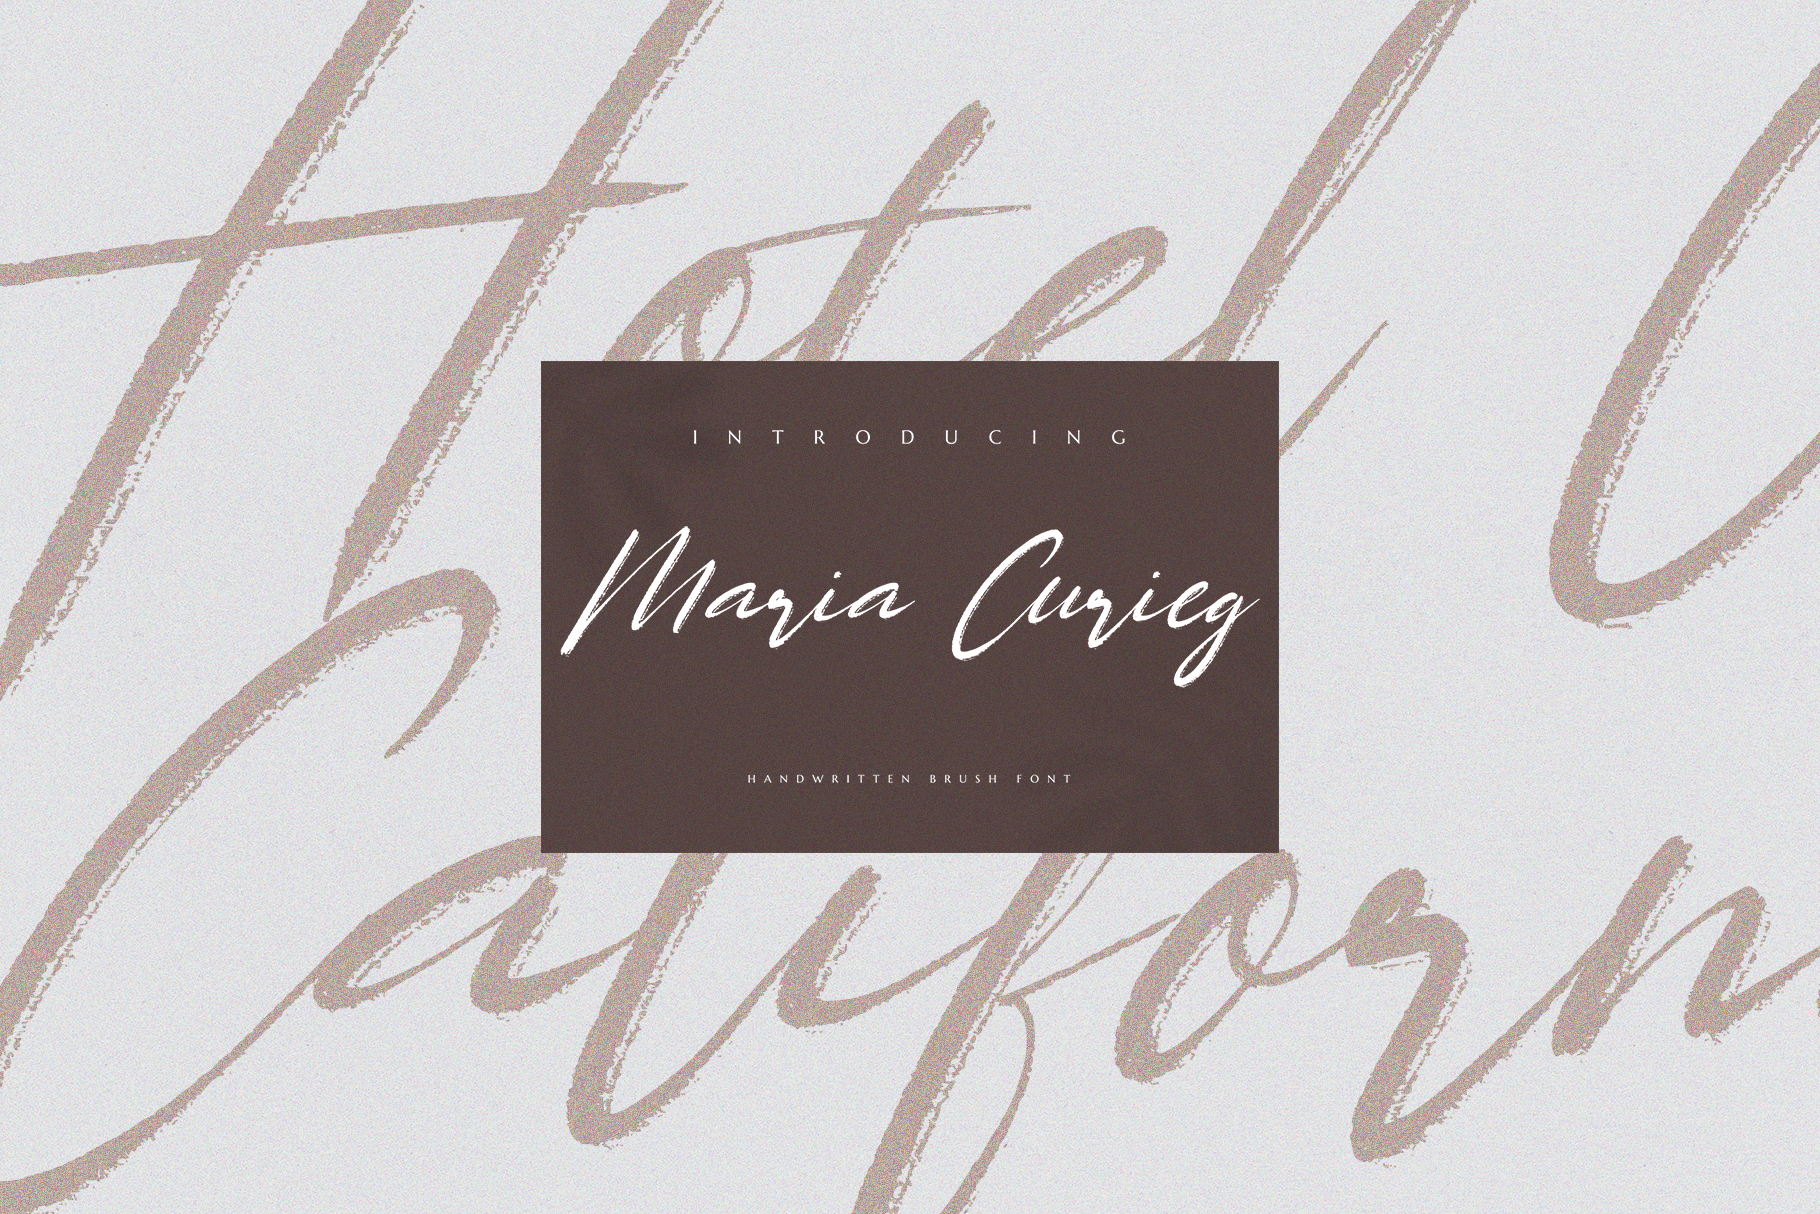 Maria Curieg Handwritten Brush Font example image 2